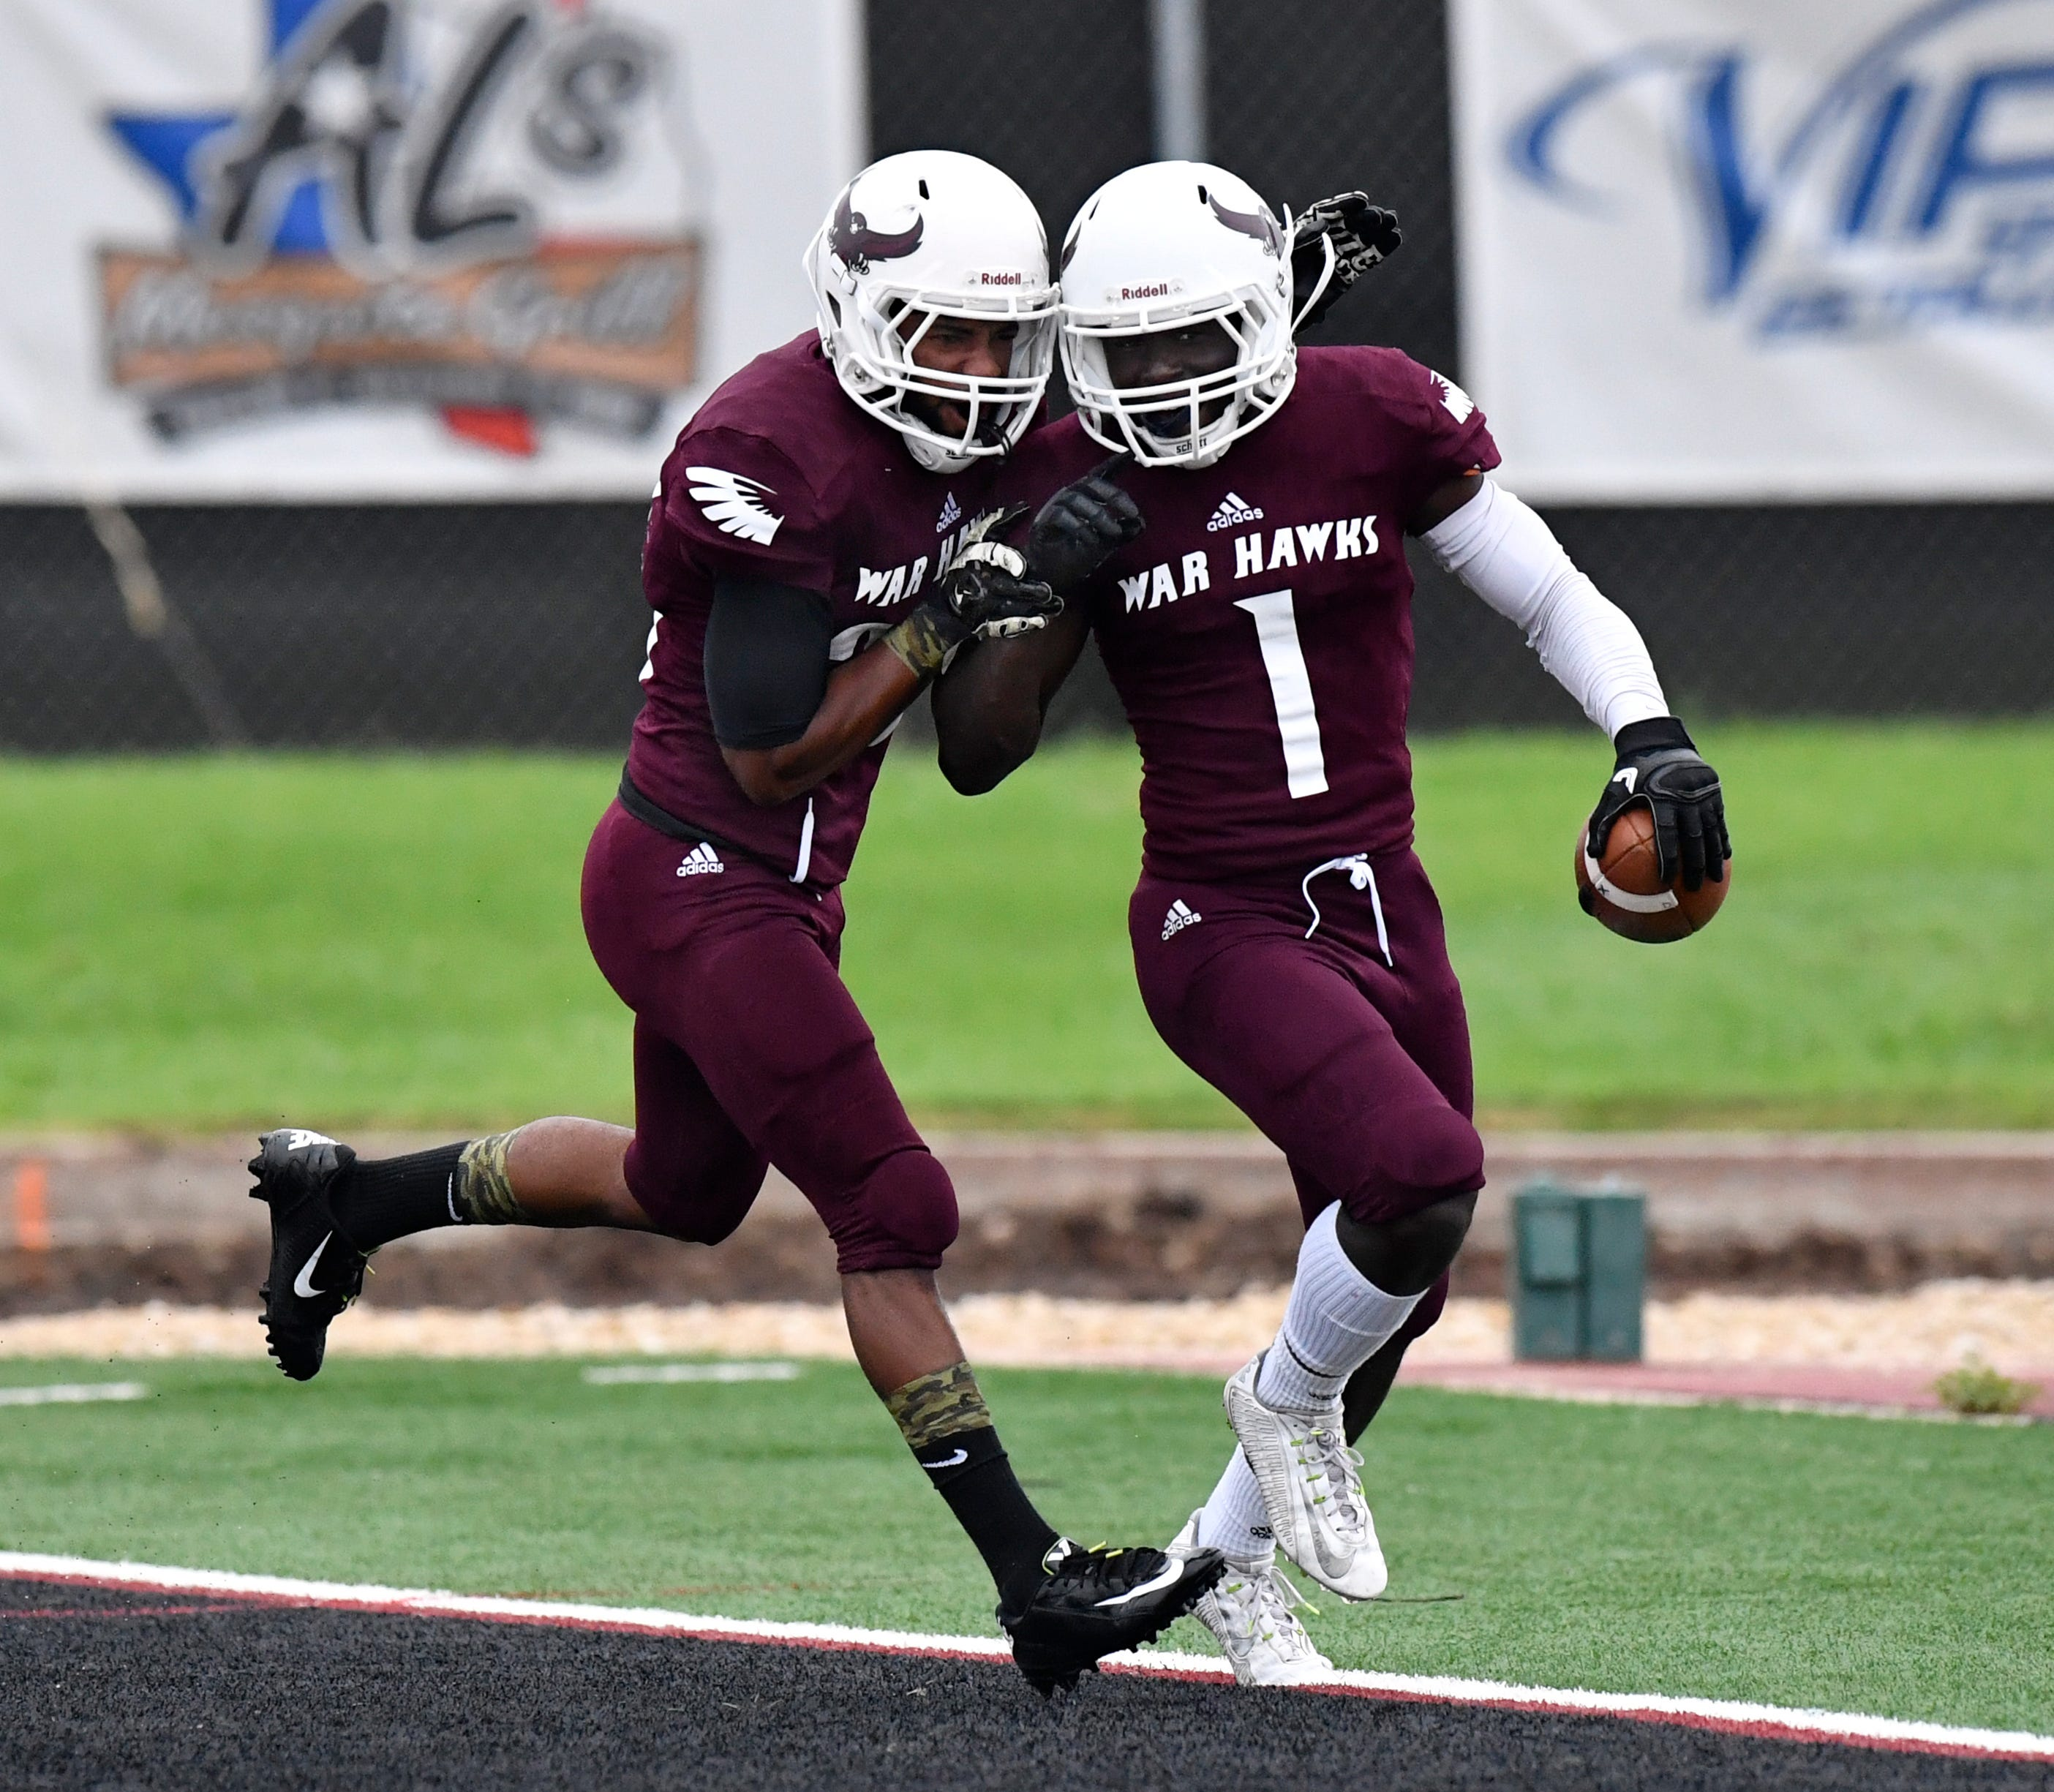 War Hawks wide receiver Spencer Knox (left) congratulates fellow McMurry wide receiver Eriel Dorsey on a touchdown against Sul Ross in Abilene on Sept. 22. The two players have been key to the McMurry passing attack.